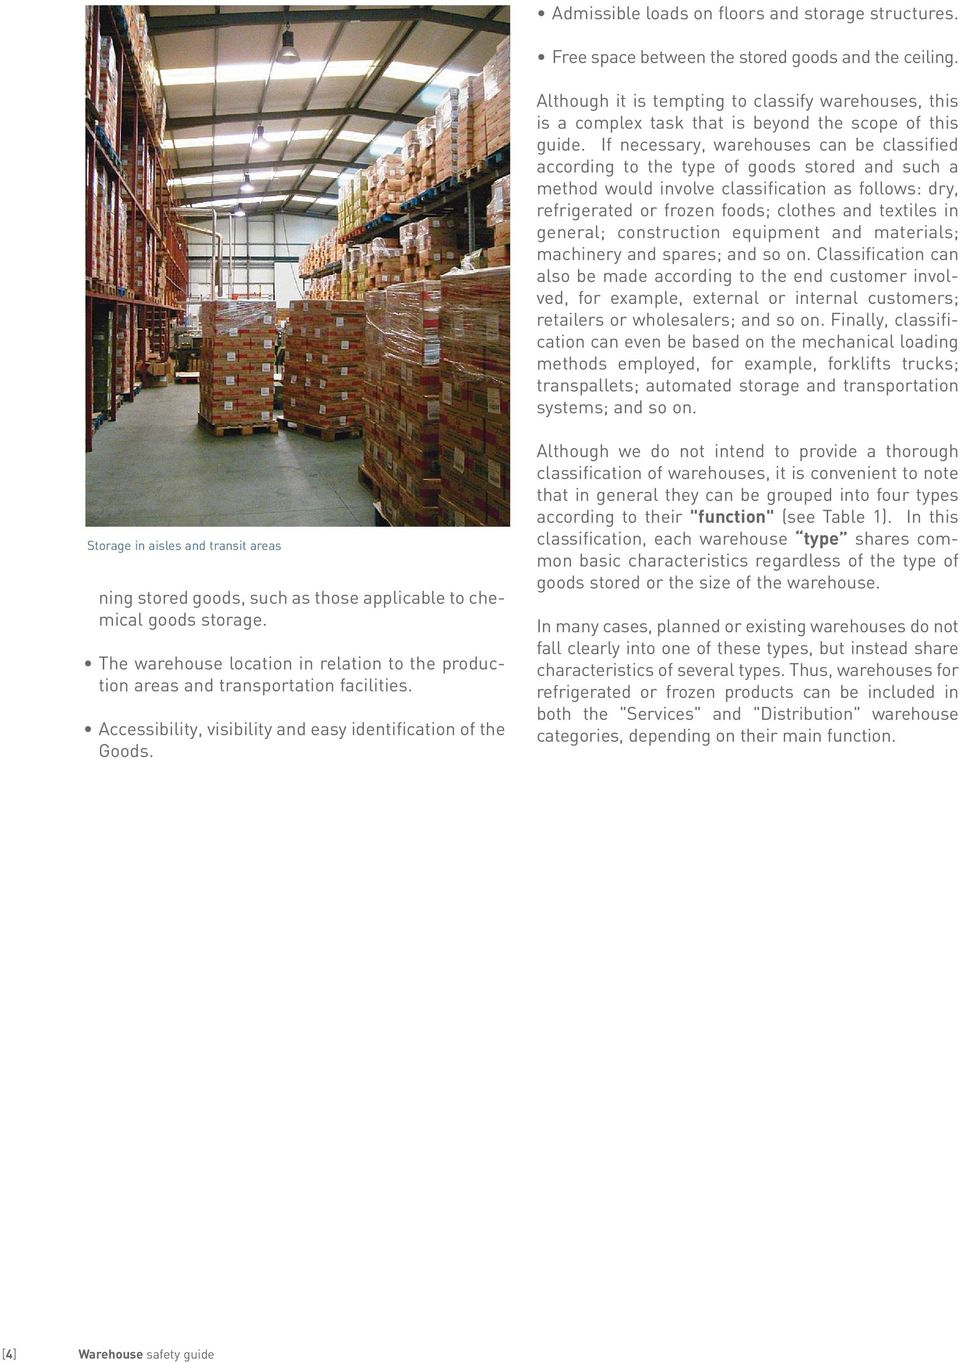 If necessary, warehouses can be classified according to the type of goods stored and such a method would involve classification as follows: dry, refrigerated or frozen foods; clothes and textiles in